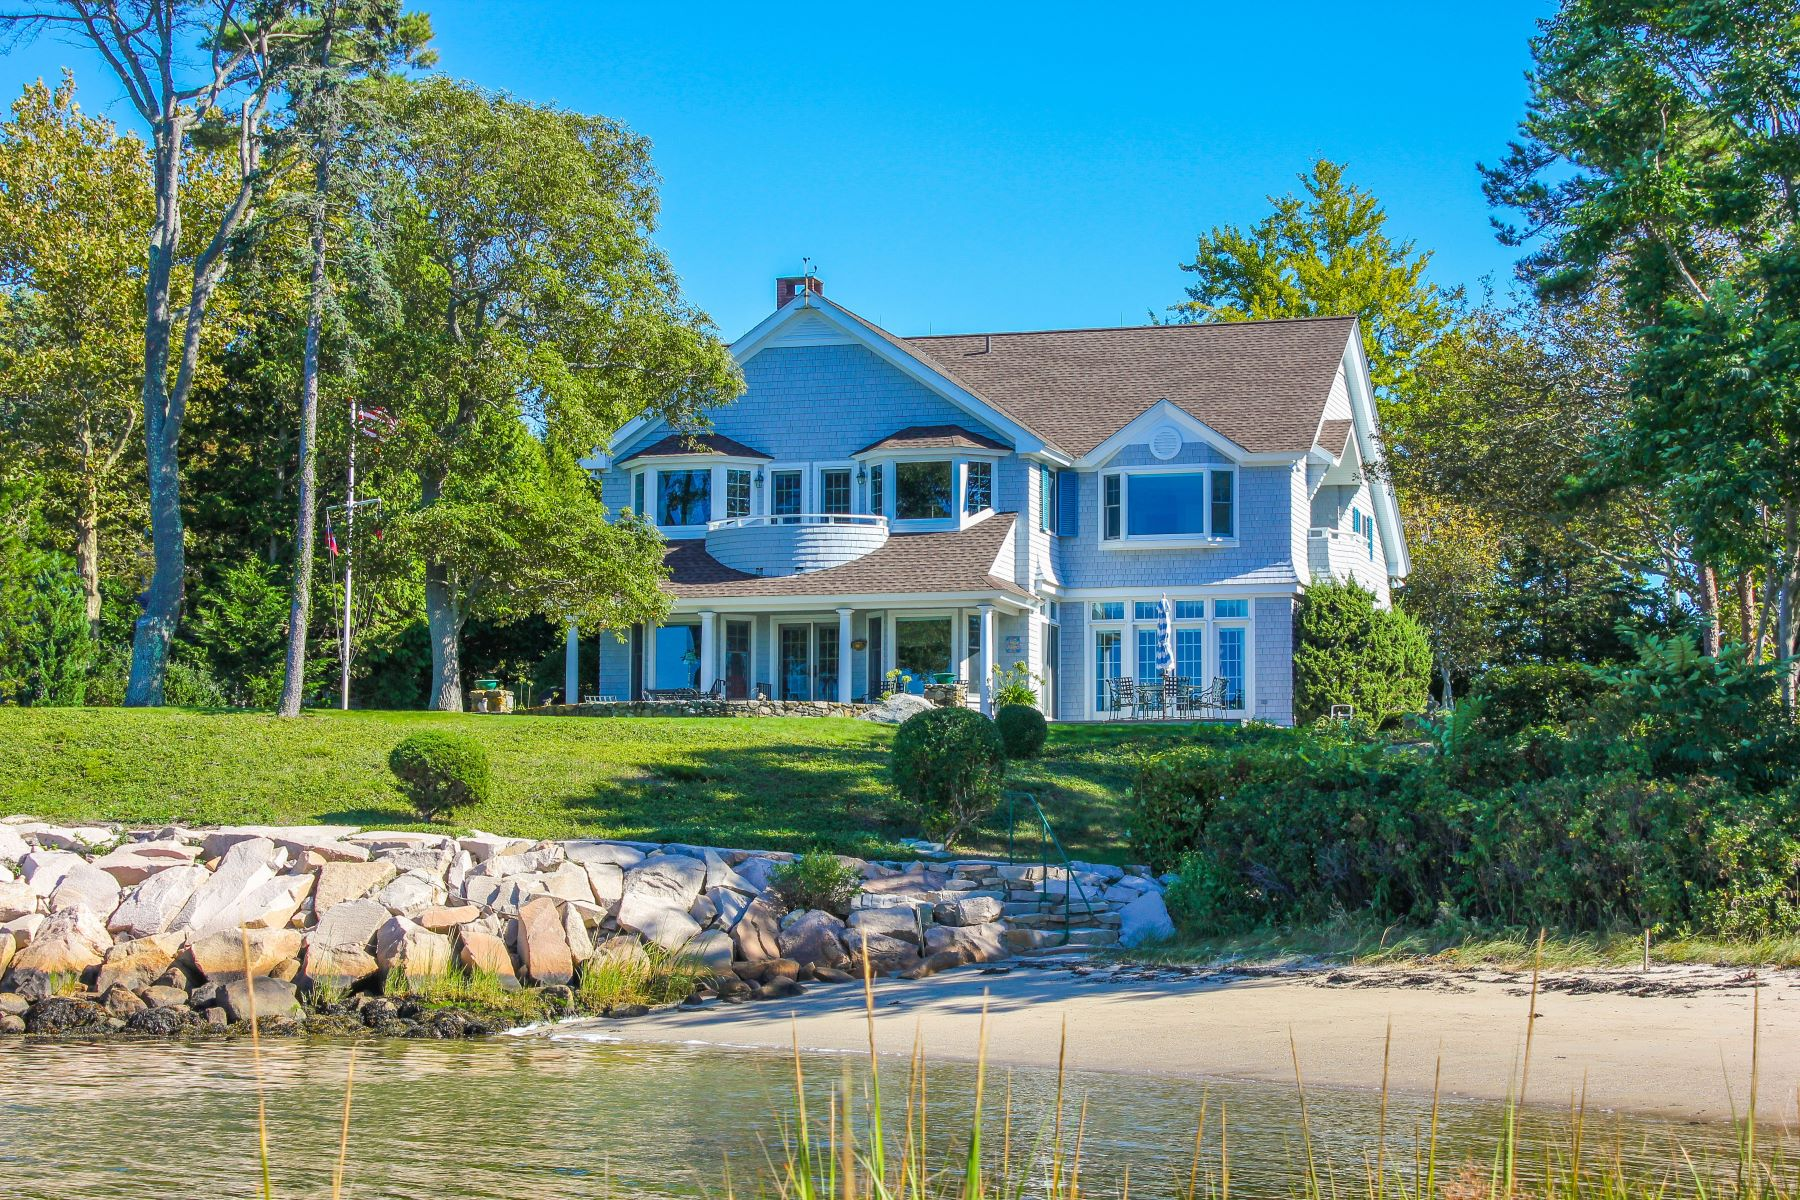 Single Family Homes for Sale at 9 Water's Edge Road, Westerly, RI Westerly, Rhode Island 02891 United States